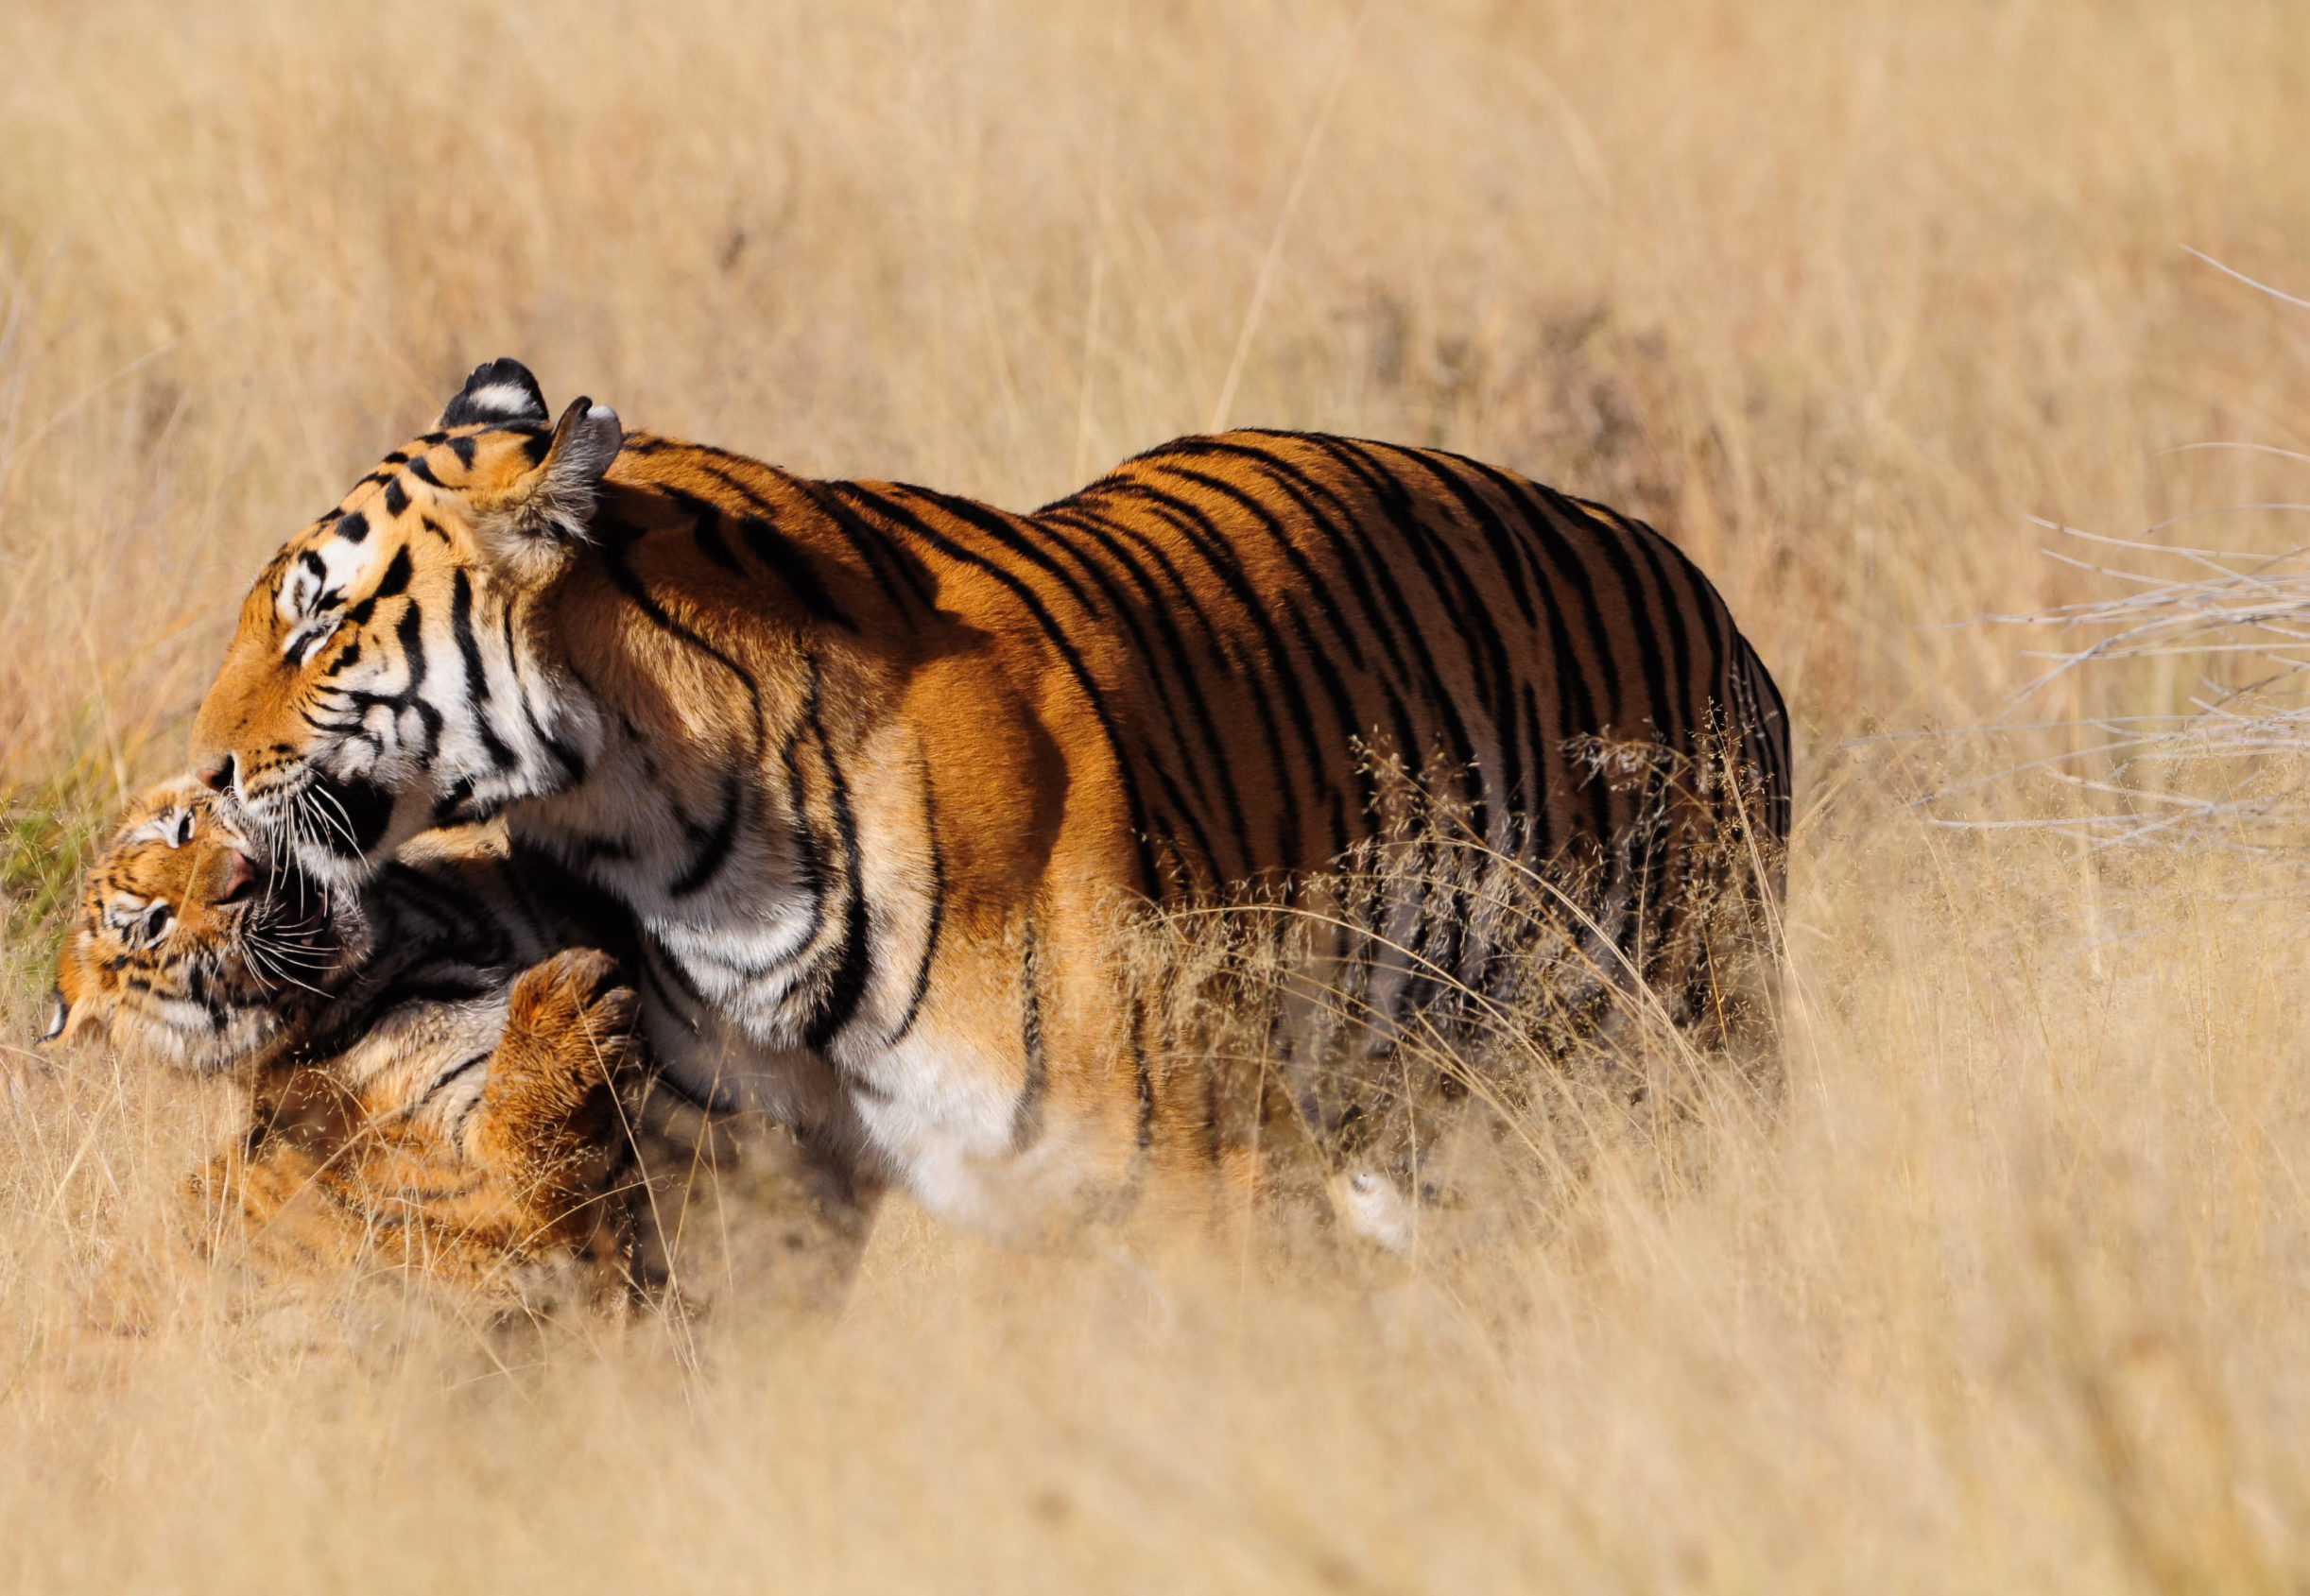 Tiger and cub in long grass